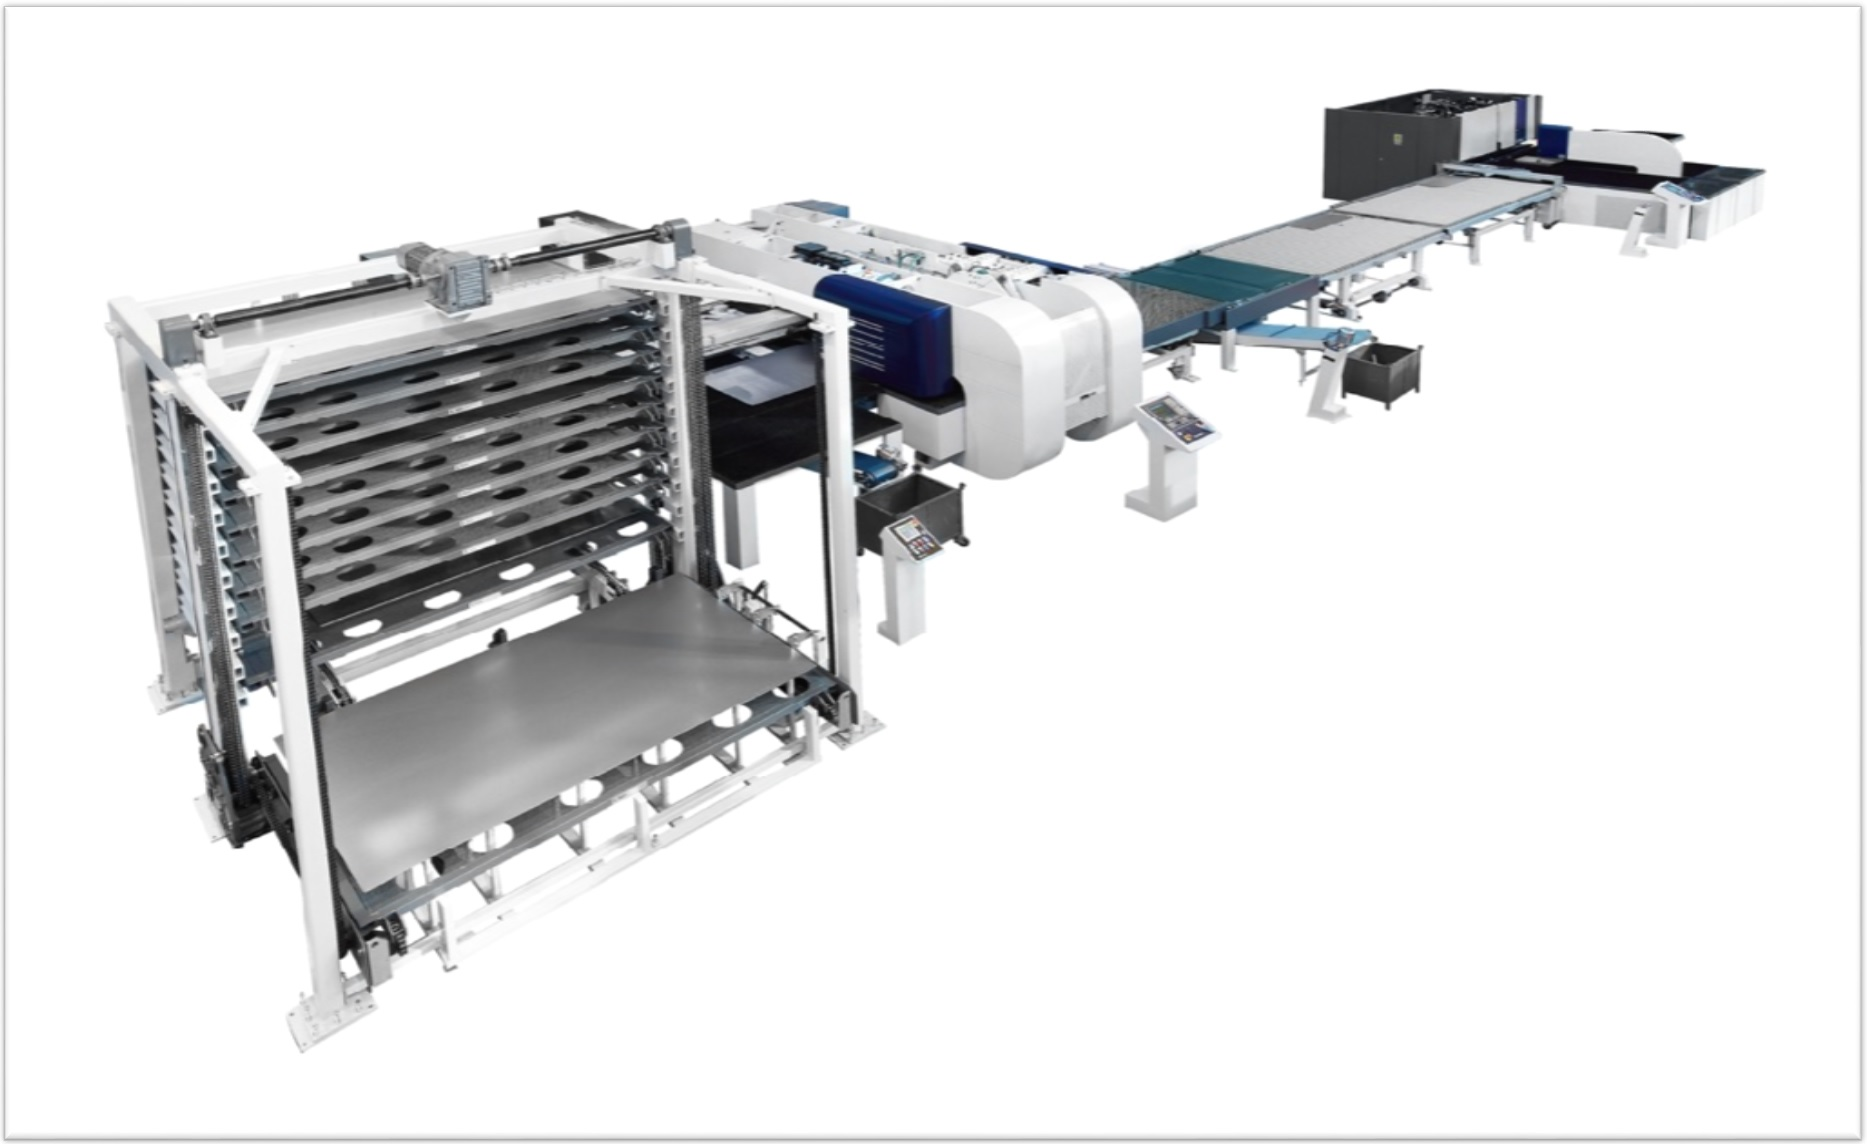 danobat BM and Cupra machines in flexible production line